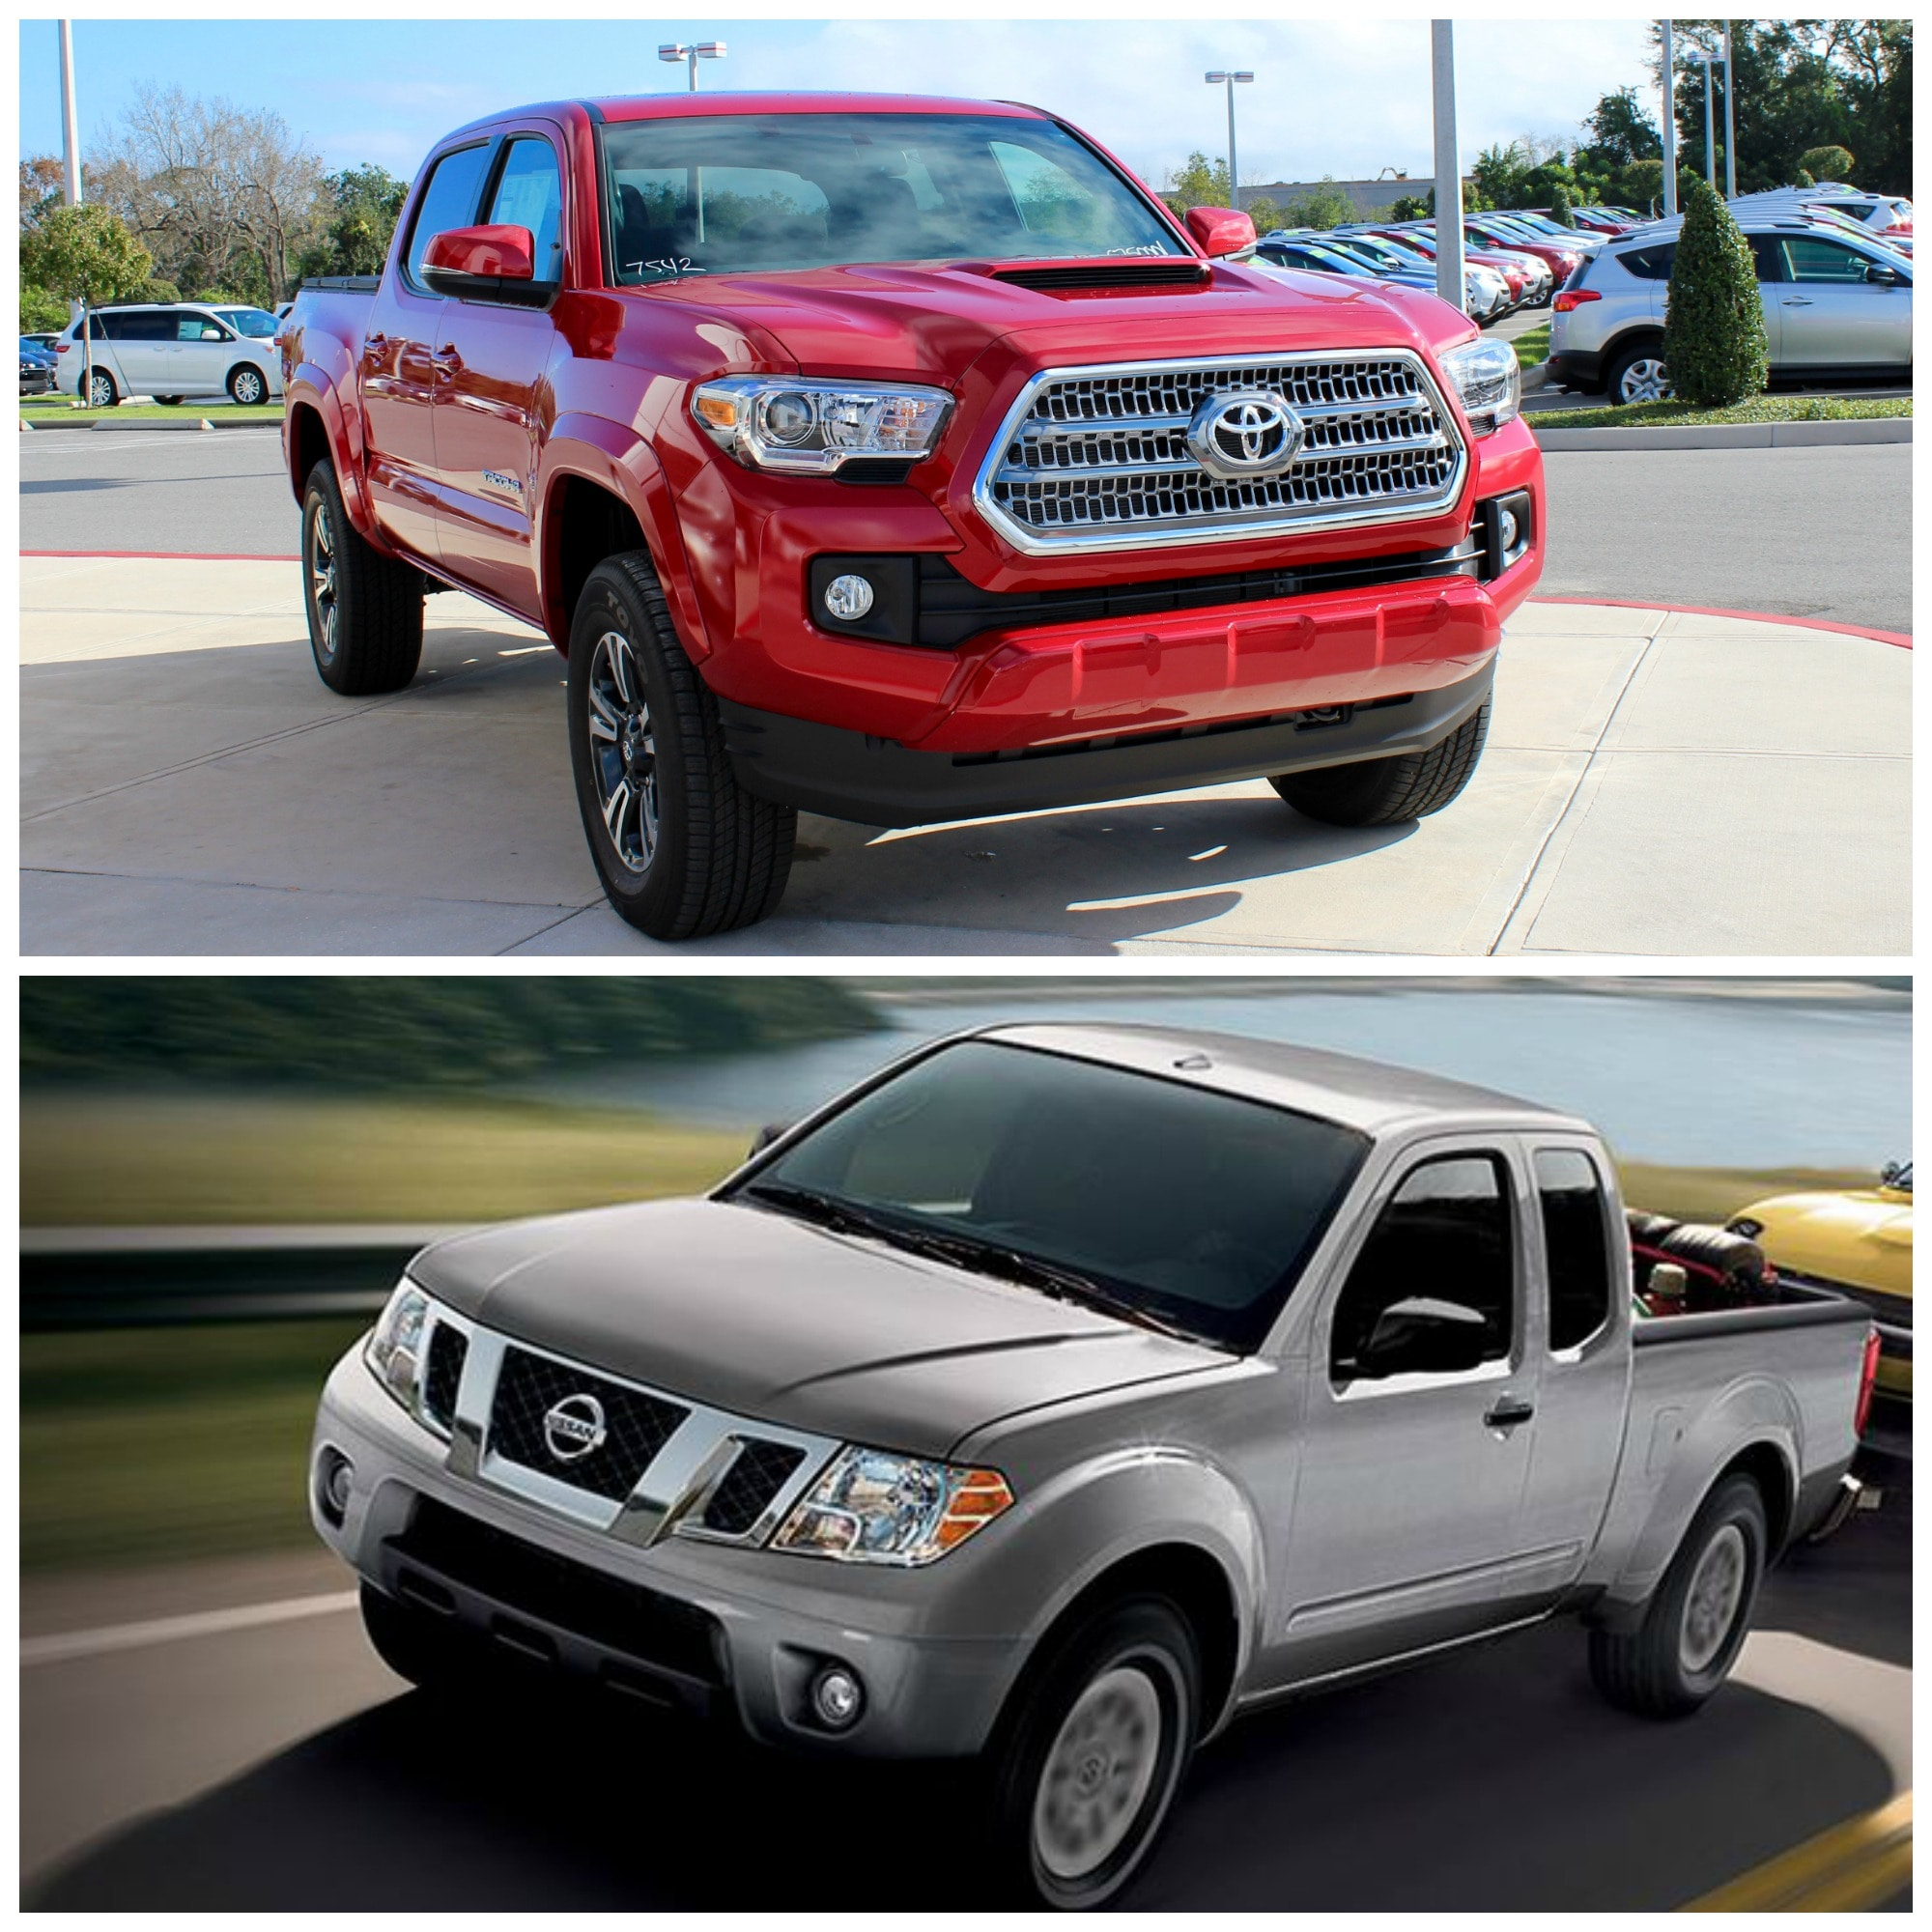 2016 Nissan Frontier King Cab Camshaft: 2016 Toyota Tacoma Vs Nissan Frontier